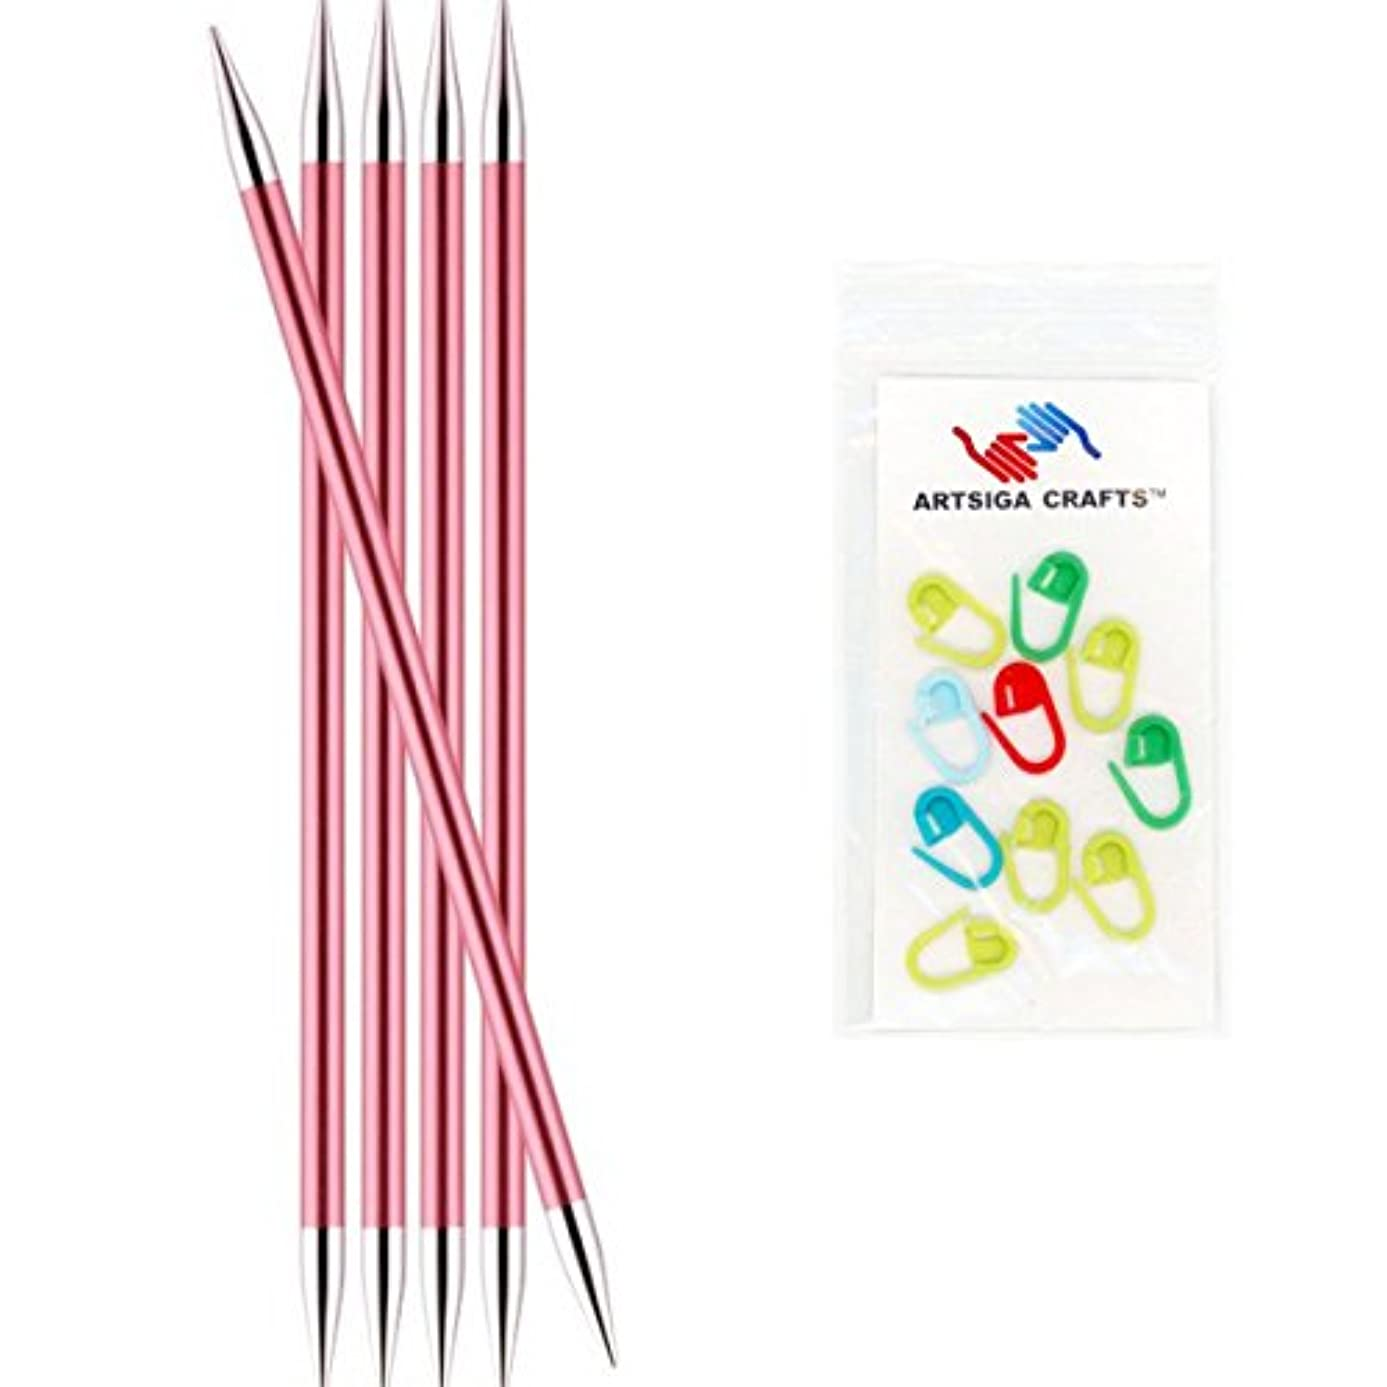 Knitter's Pride Zing Double Pointed Knitting Needles 6in. Size US 10.5 (6.5mm) Bundle with 10 Artsiga Crafts Stitch Markers 140014